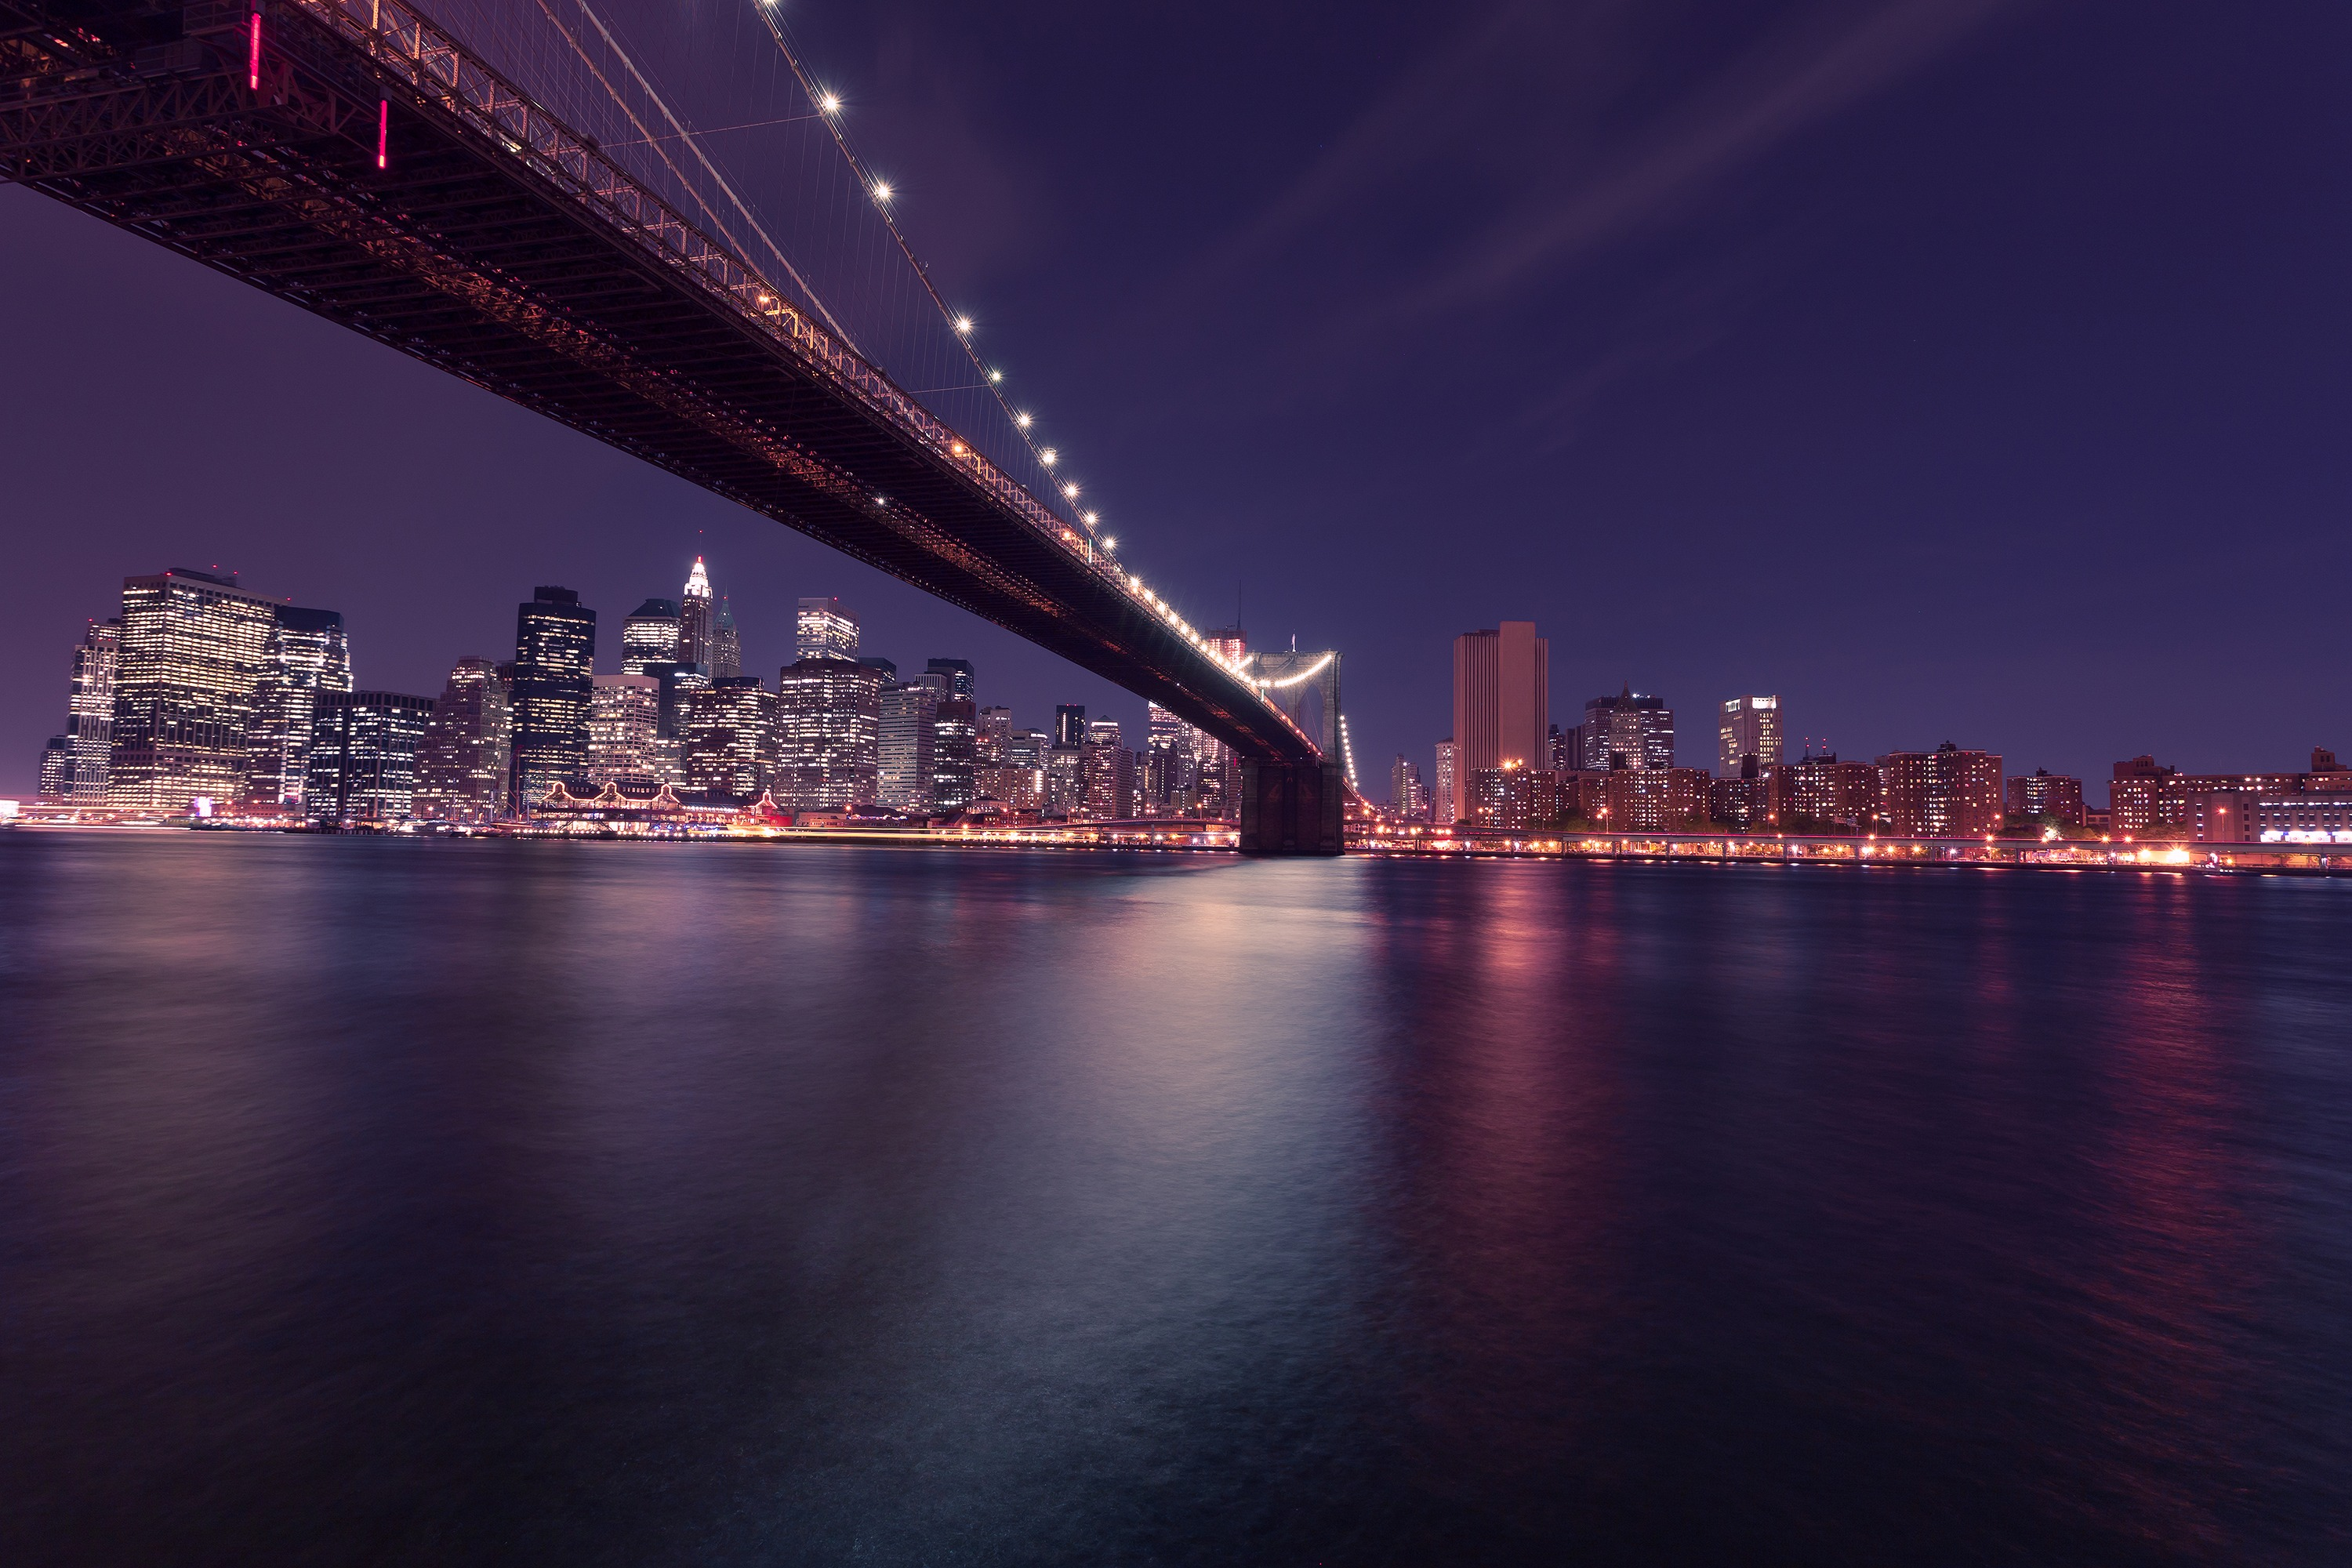 horizon-light-bridge-skyline-night-town-971483-pxhere.com.jpg